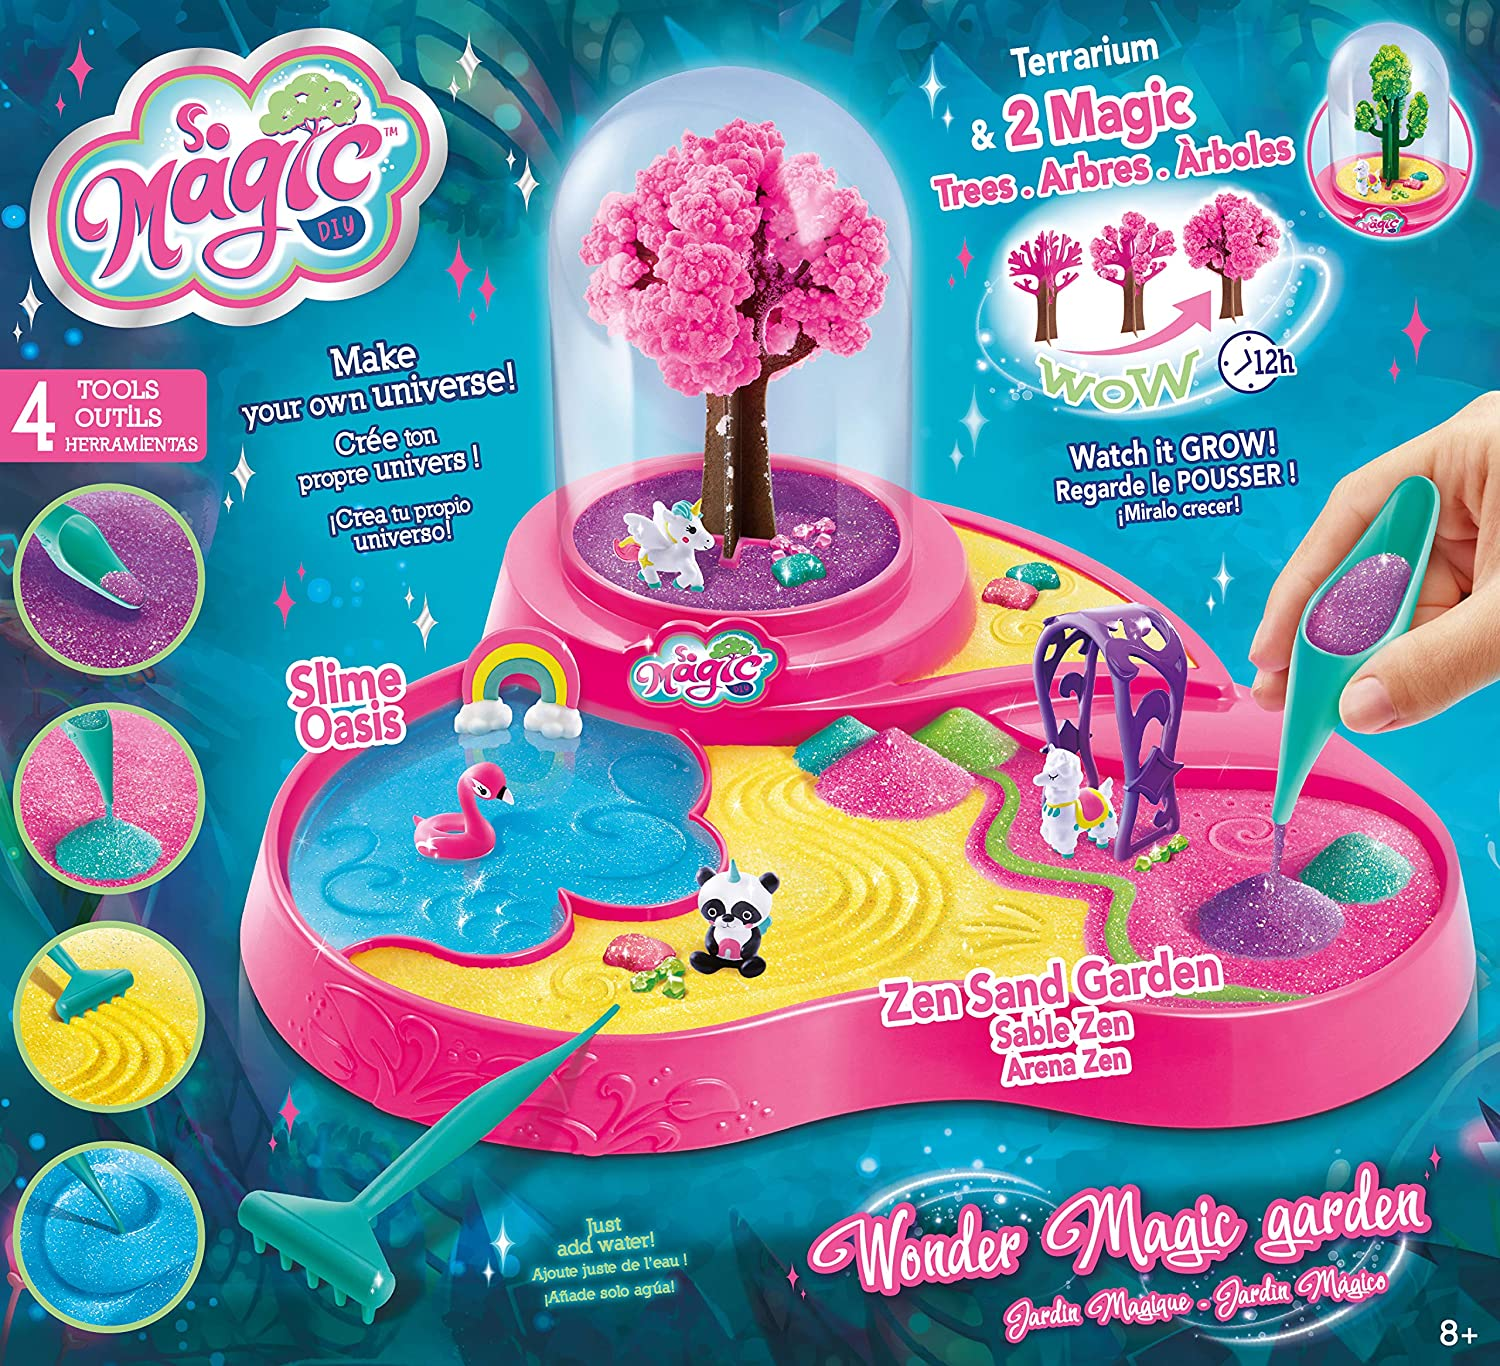 So Magic DIY- Jardín Mágico Playset, Color rosa (Canal Toys MSG004) , color/modelo surtido: Amazon.es: Juguetes y juegos